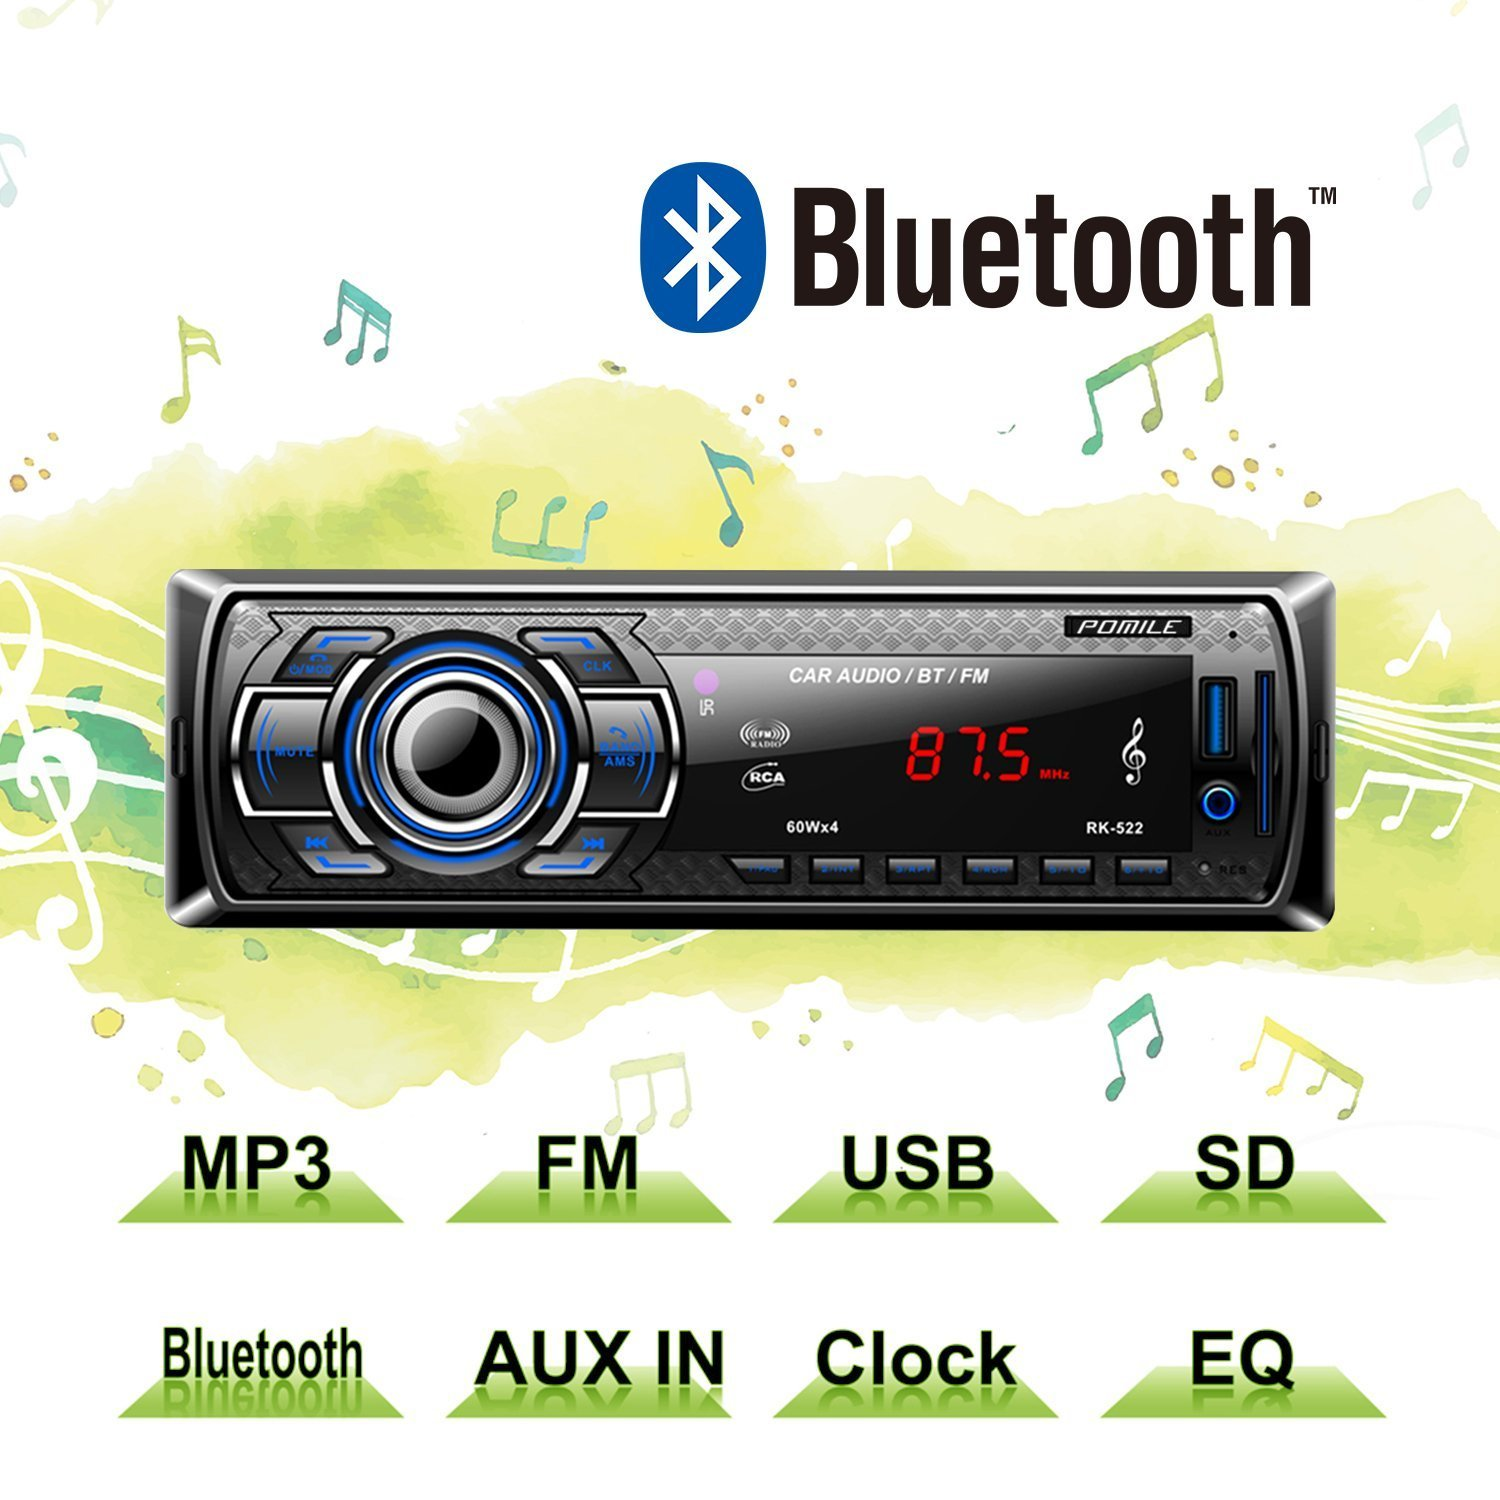 POMILE Car Stereo Audio Receiver Bluetooth, Car Radio MP3 Player Single Din In-Dash USB/SD/FM/AUX/MMC with Remote Control 12V, (No CD/DVD) by POMILE (Image #1)